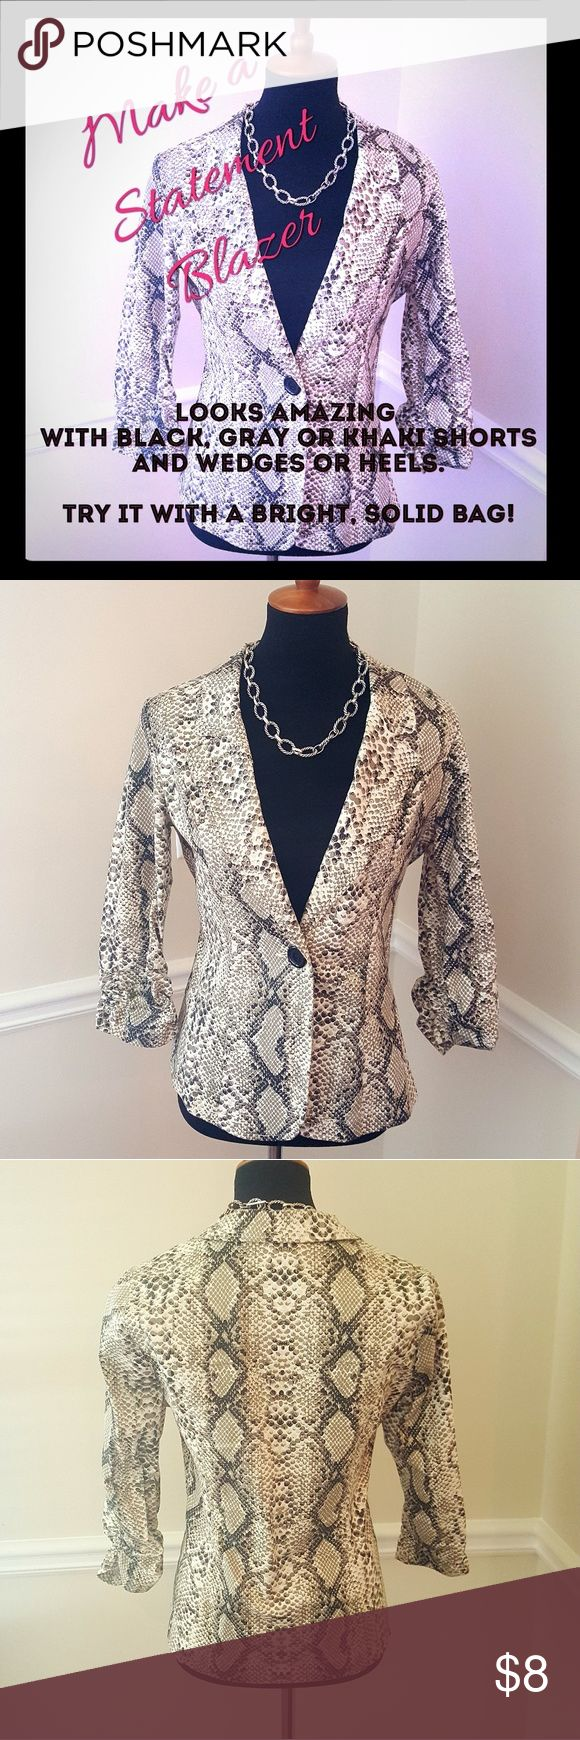 "Stretch Blazer 3/4 rouched sleeves, ""snake skin"" pattern, very stretchy and lightweight. Transitions from day to night beautifully. Pairs with gray,  black, khaki and off white - super versatile. Jackets & Coats Blazers"